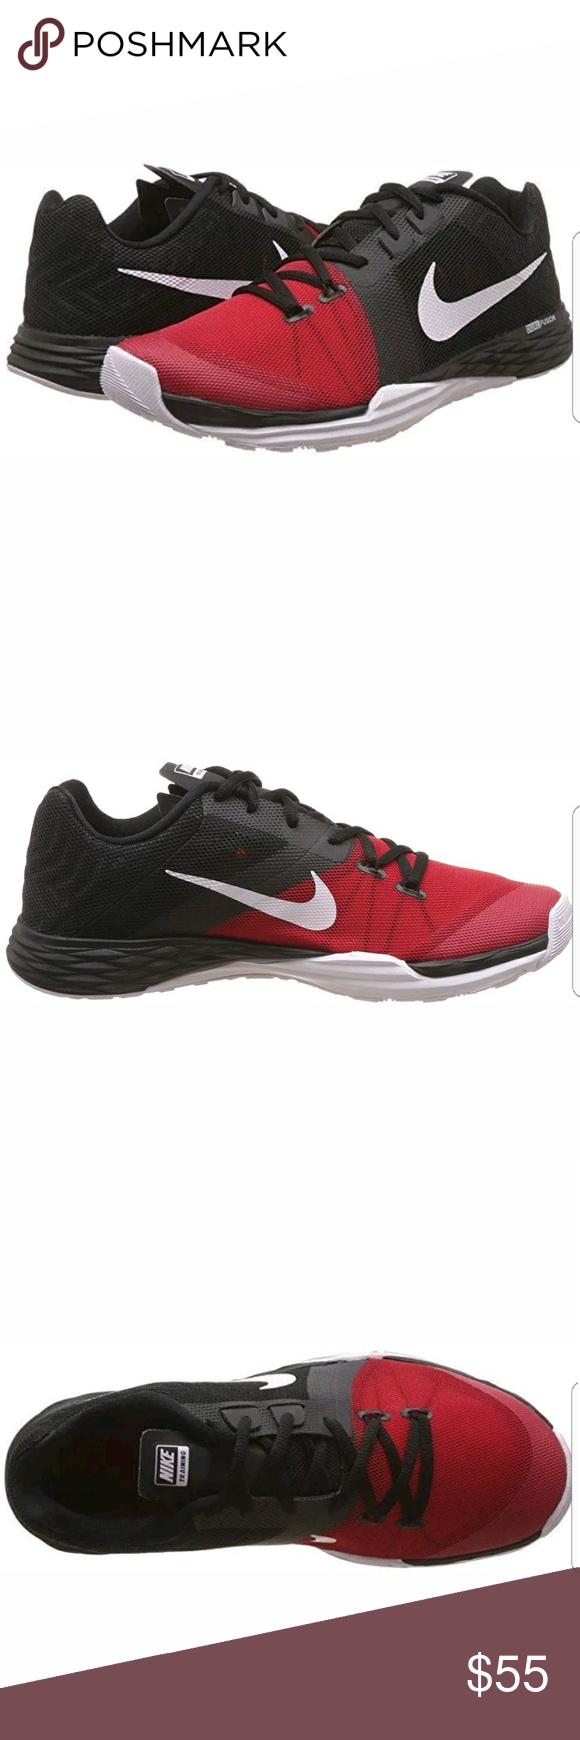 Subvención Ya que Berenjena  NIKE?TRAIN PRIME IRON DF RED/BLACK 832219 002 NEW WITHOUT BOX MENS?SIZE?7  NIKE?TRAIN PRIME IRON DF?SHOES RED /BLACK /WHITE 1… | Nike men, Shoes  trainers, Shoes